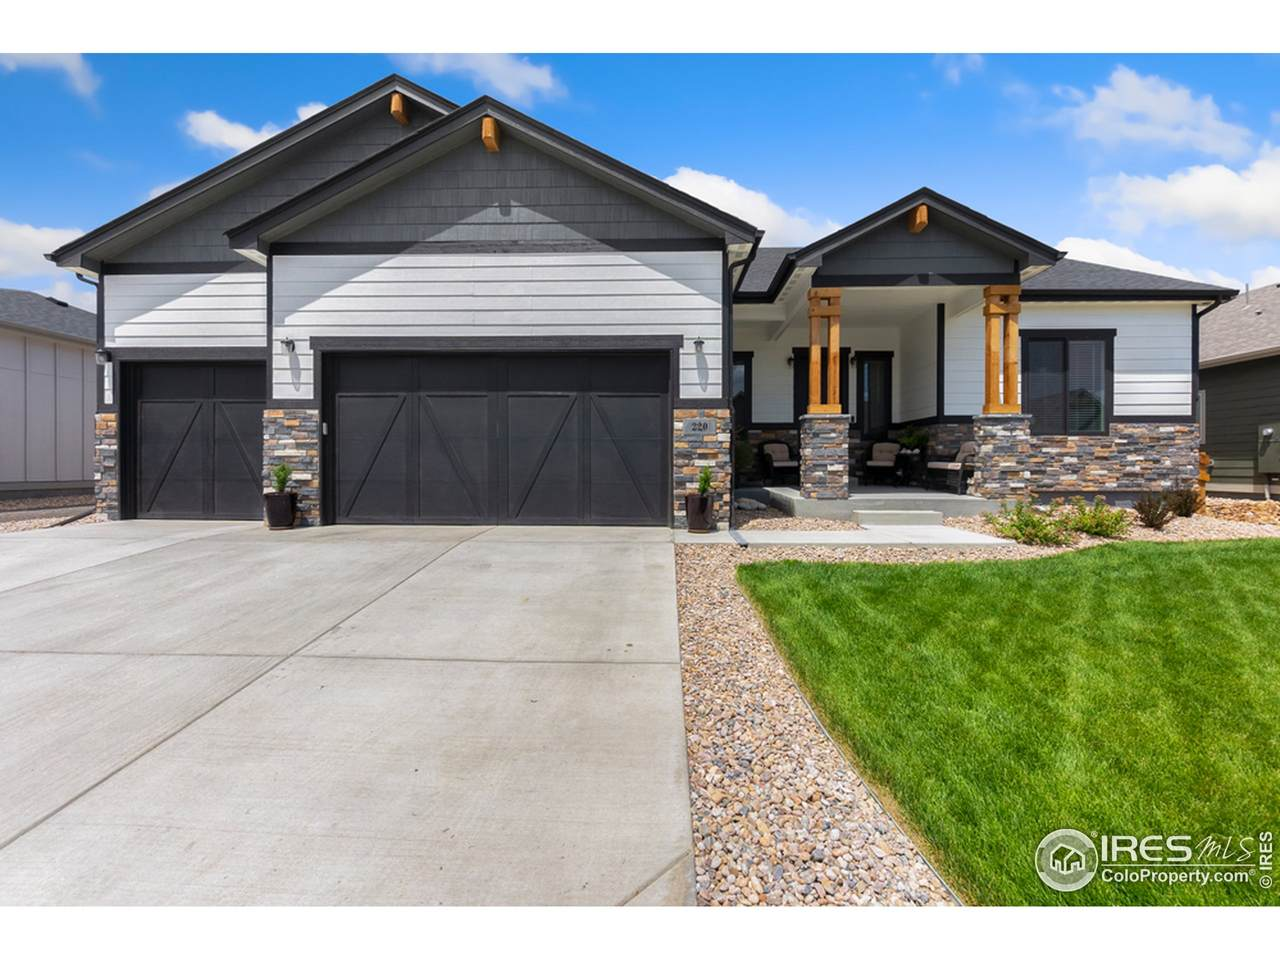 220 Turnberry Dr - Photo 1